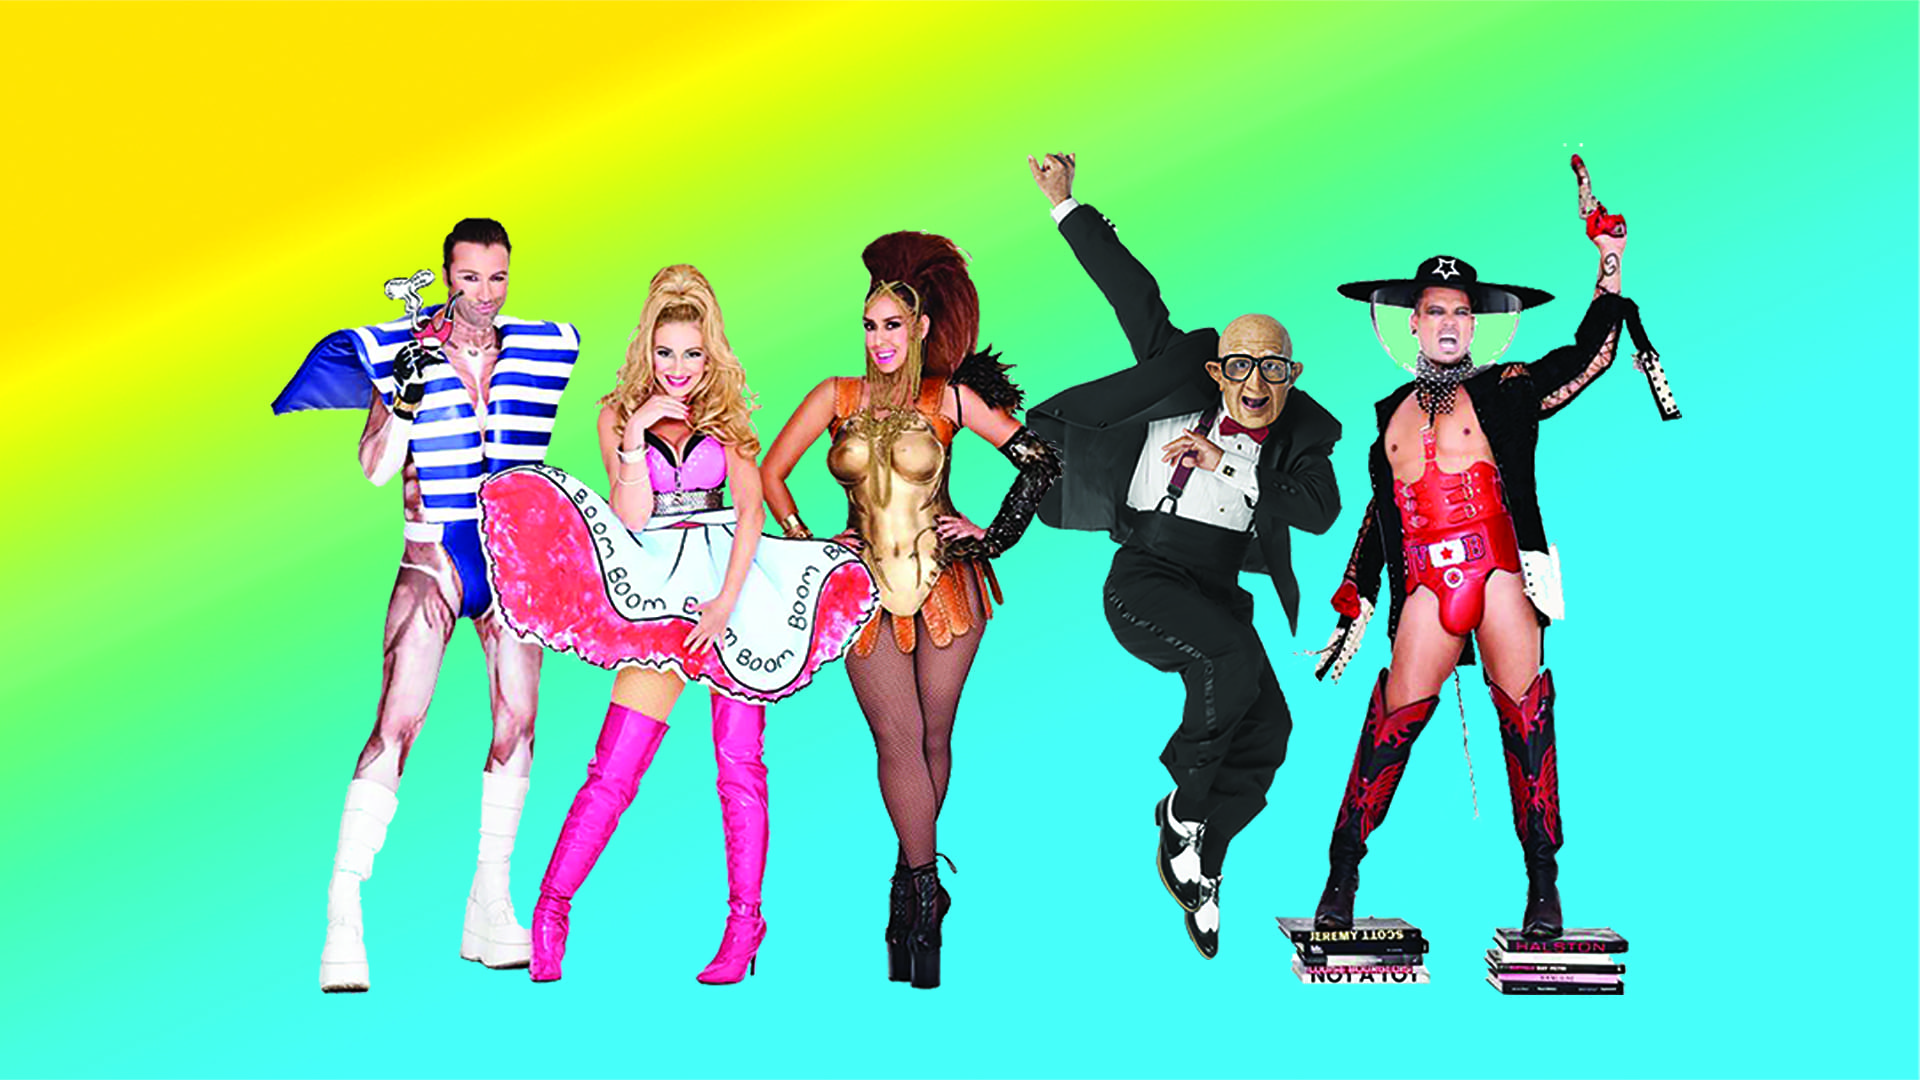 Vengaboys together with mister Six, the dancing old guy who liked to dance to We Like to Party, better known in the USA as the Six Flags Song.